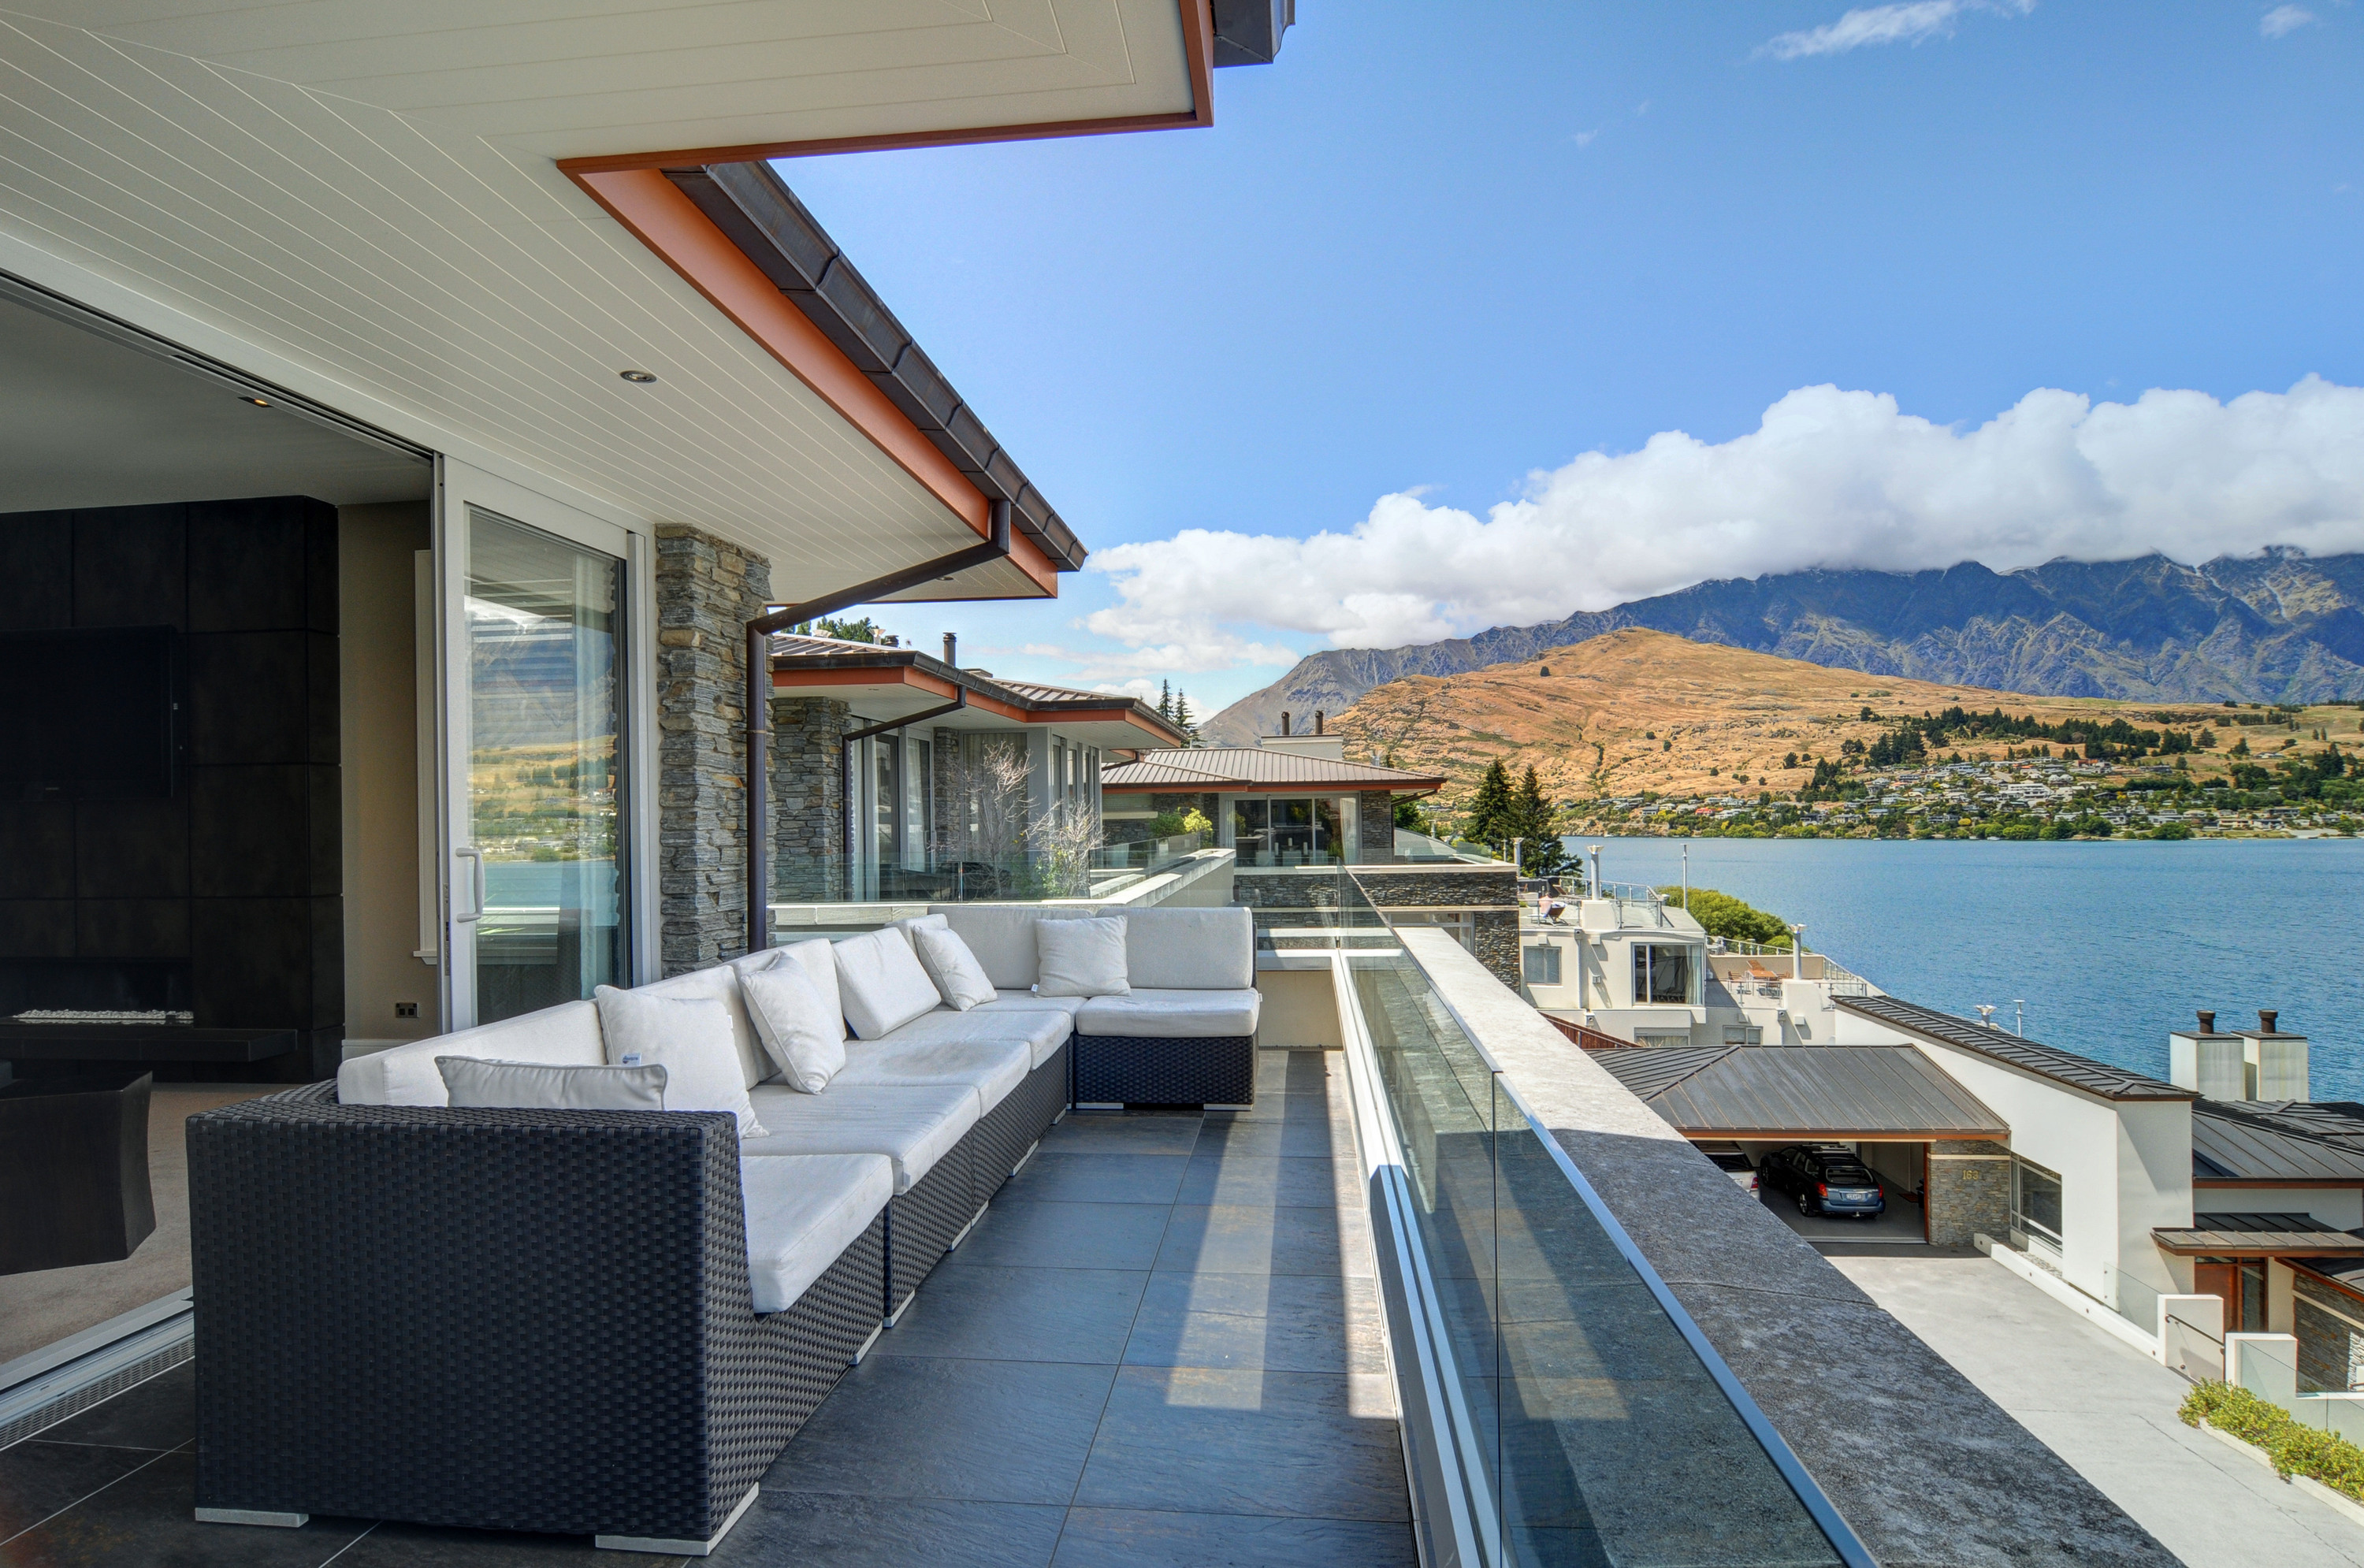 Single Family Home for Sale at 161A Frankton Road Queenstown, Otago, 9300 New Zealand